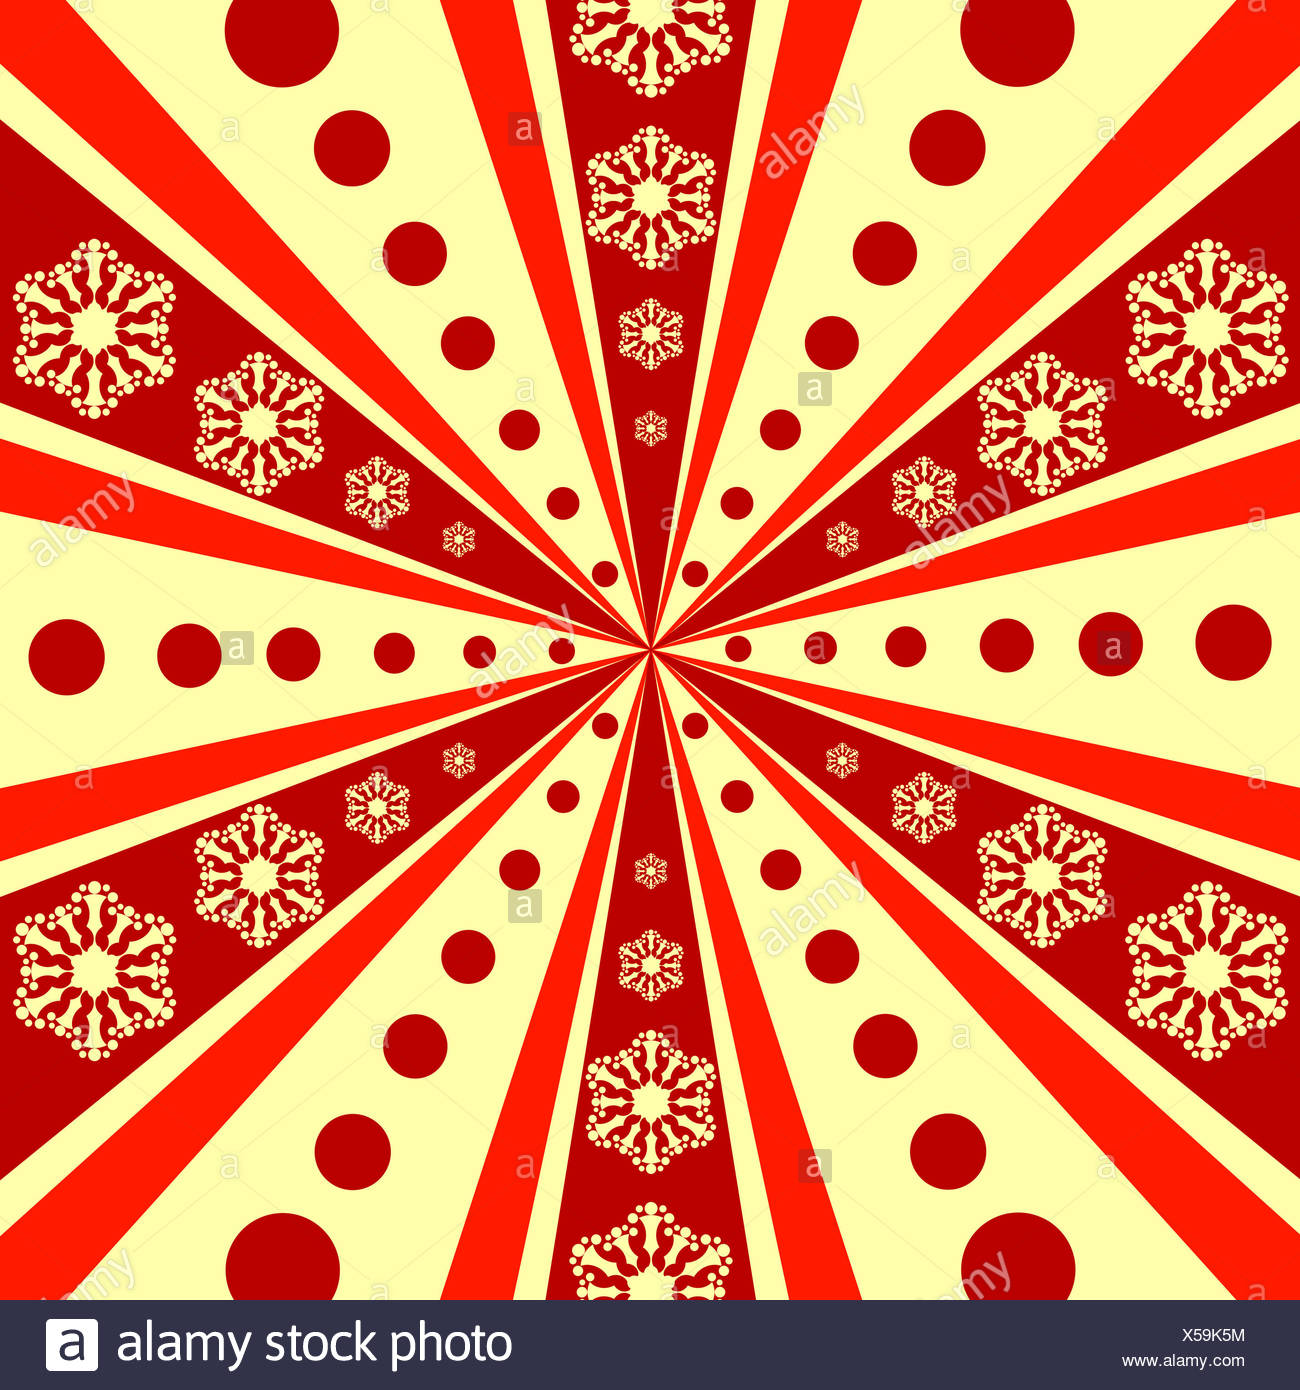 Christmas abstract background - Stock Image